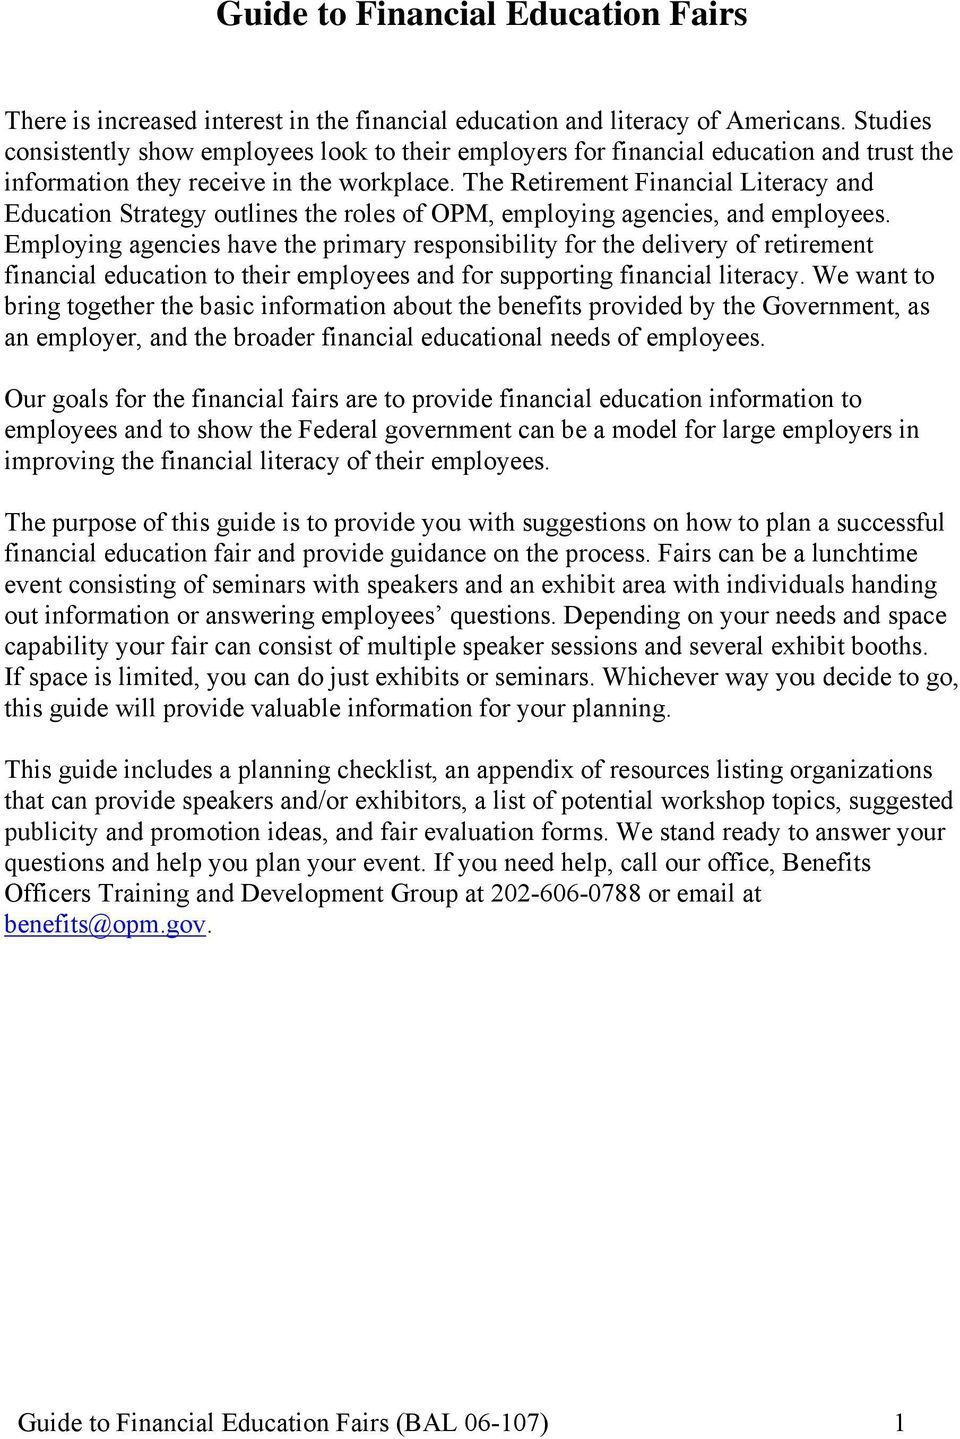 The Retirement Financial Literacy and Education Strategy outlines the roles of OPM, employing agencies, and employees.